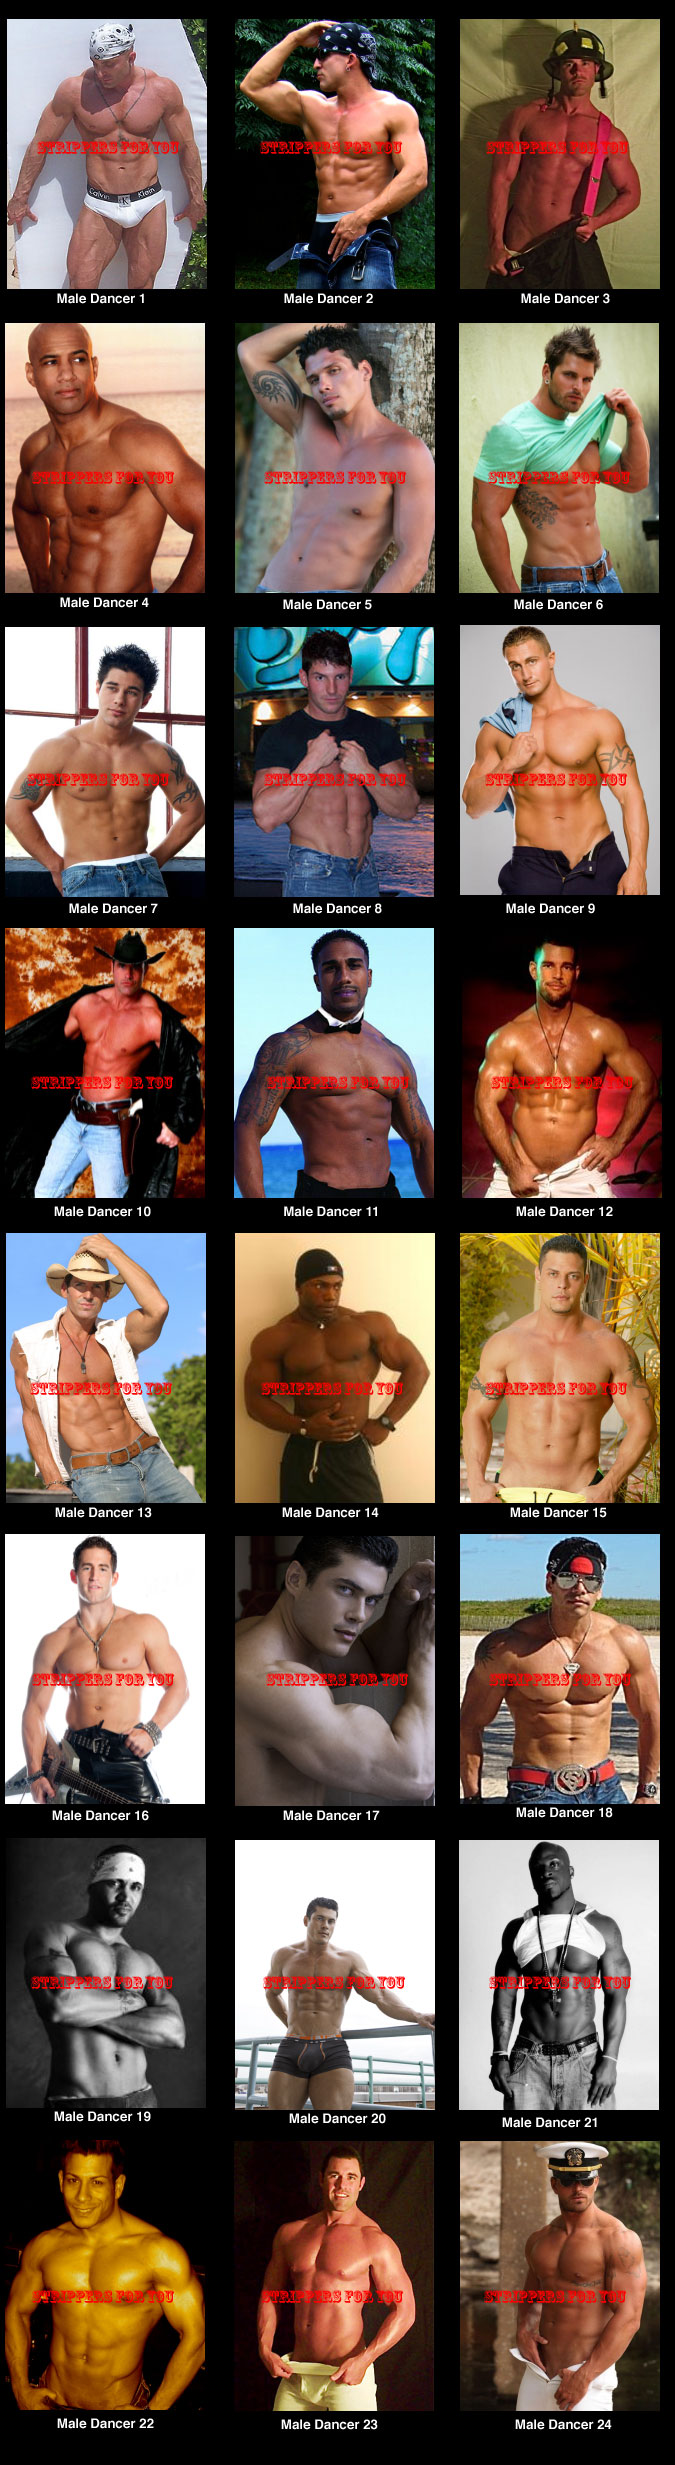 Portland male strippers